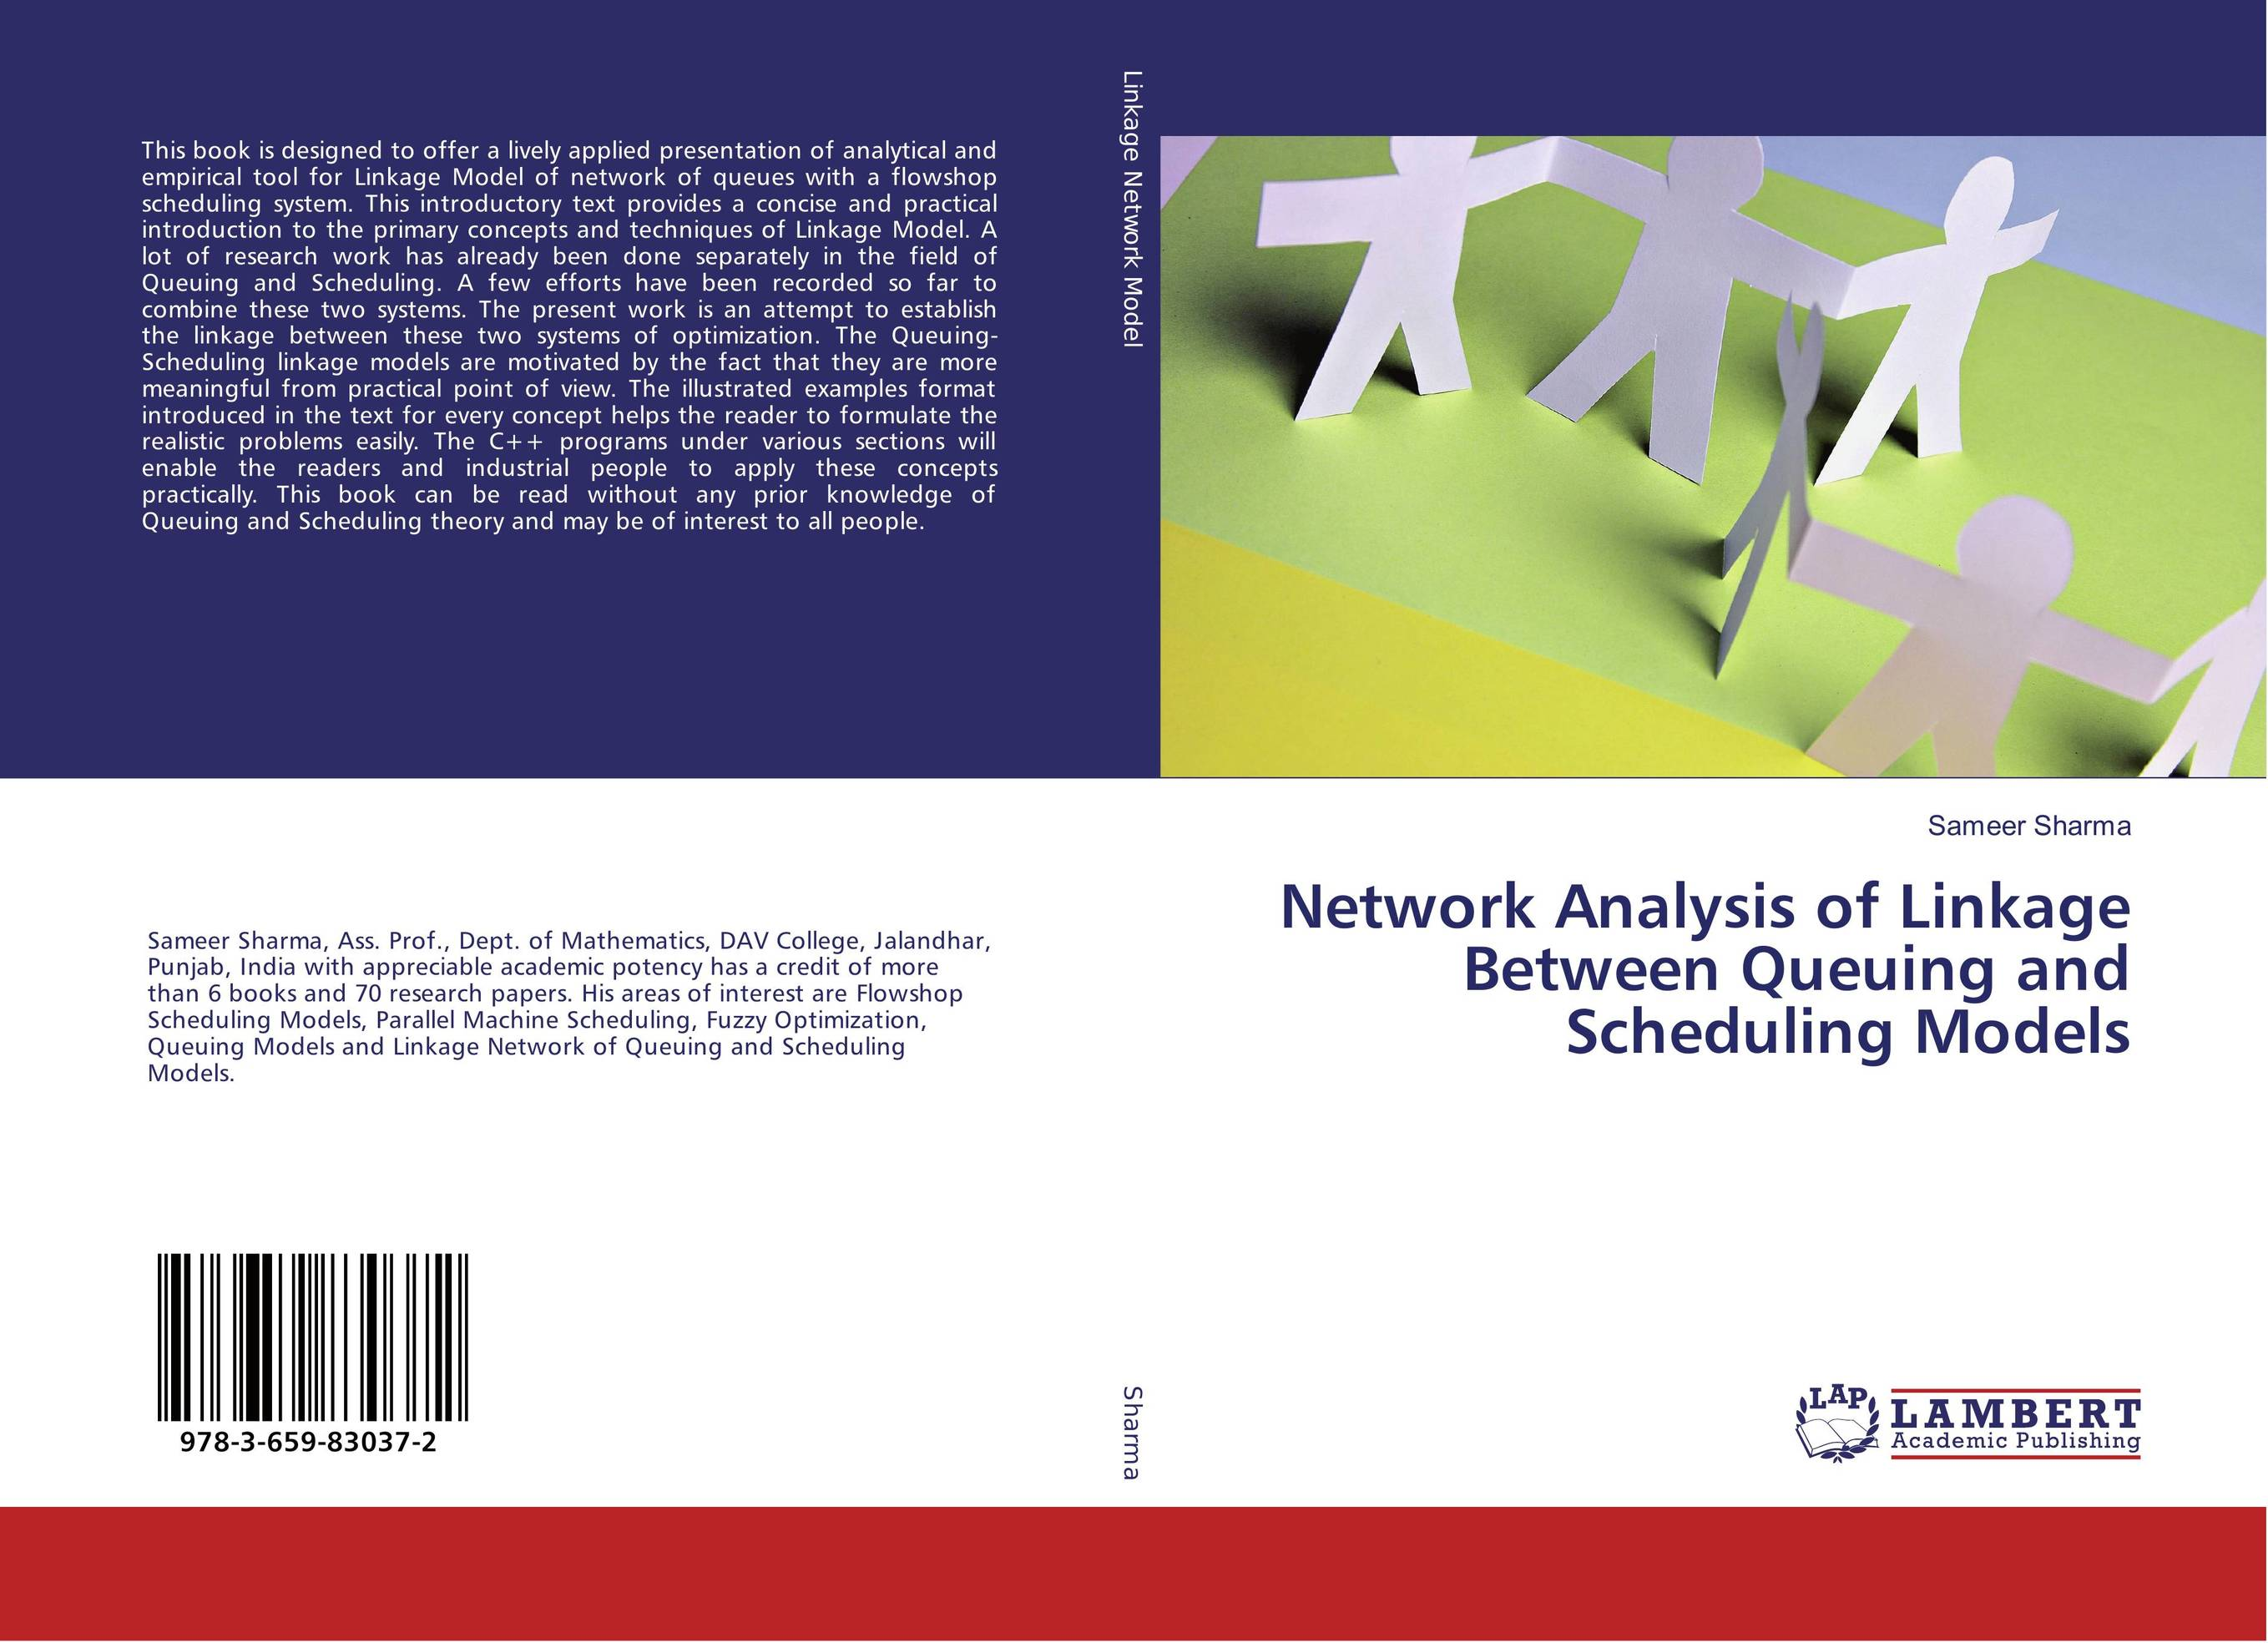 Network Analysis of Linkage Between Queuing and Scheduling Models optimization of hydro generation scheduling